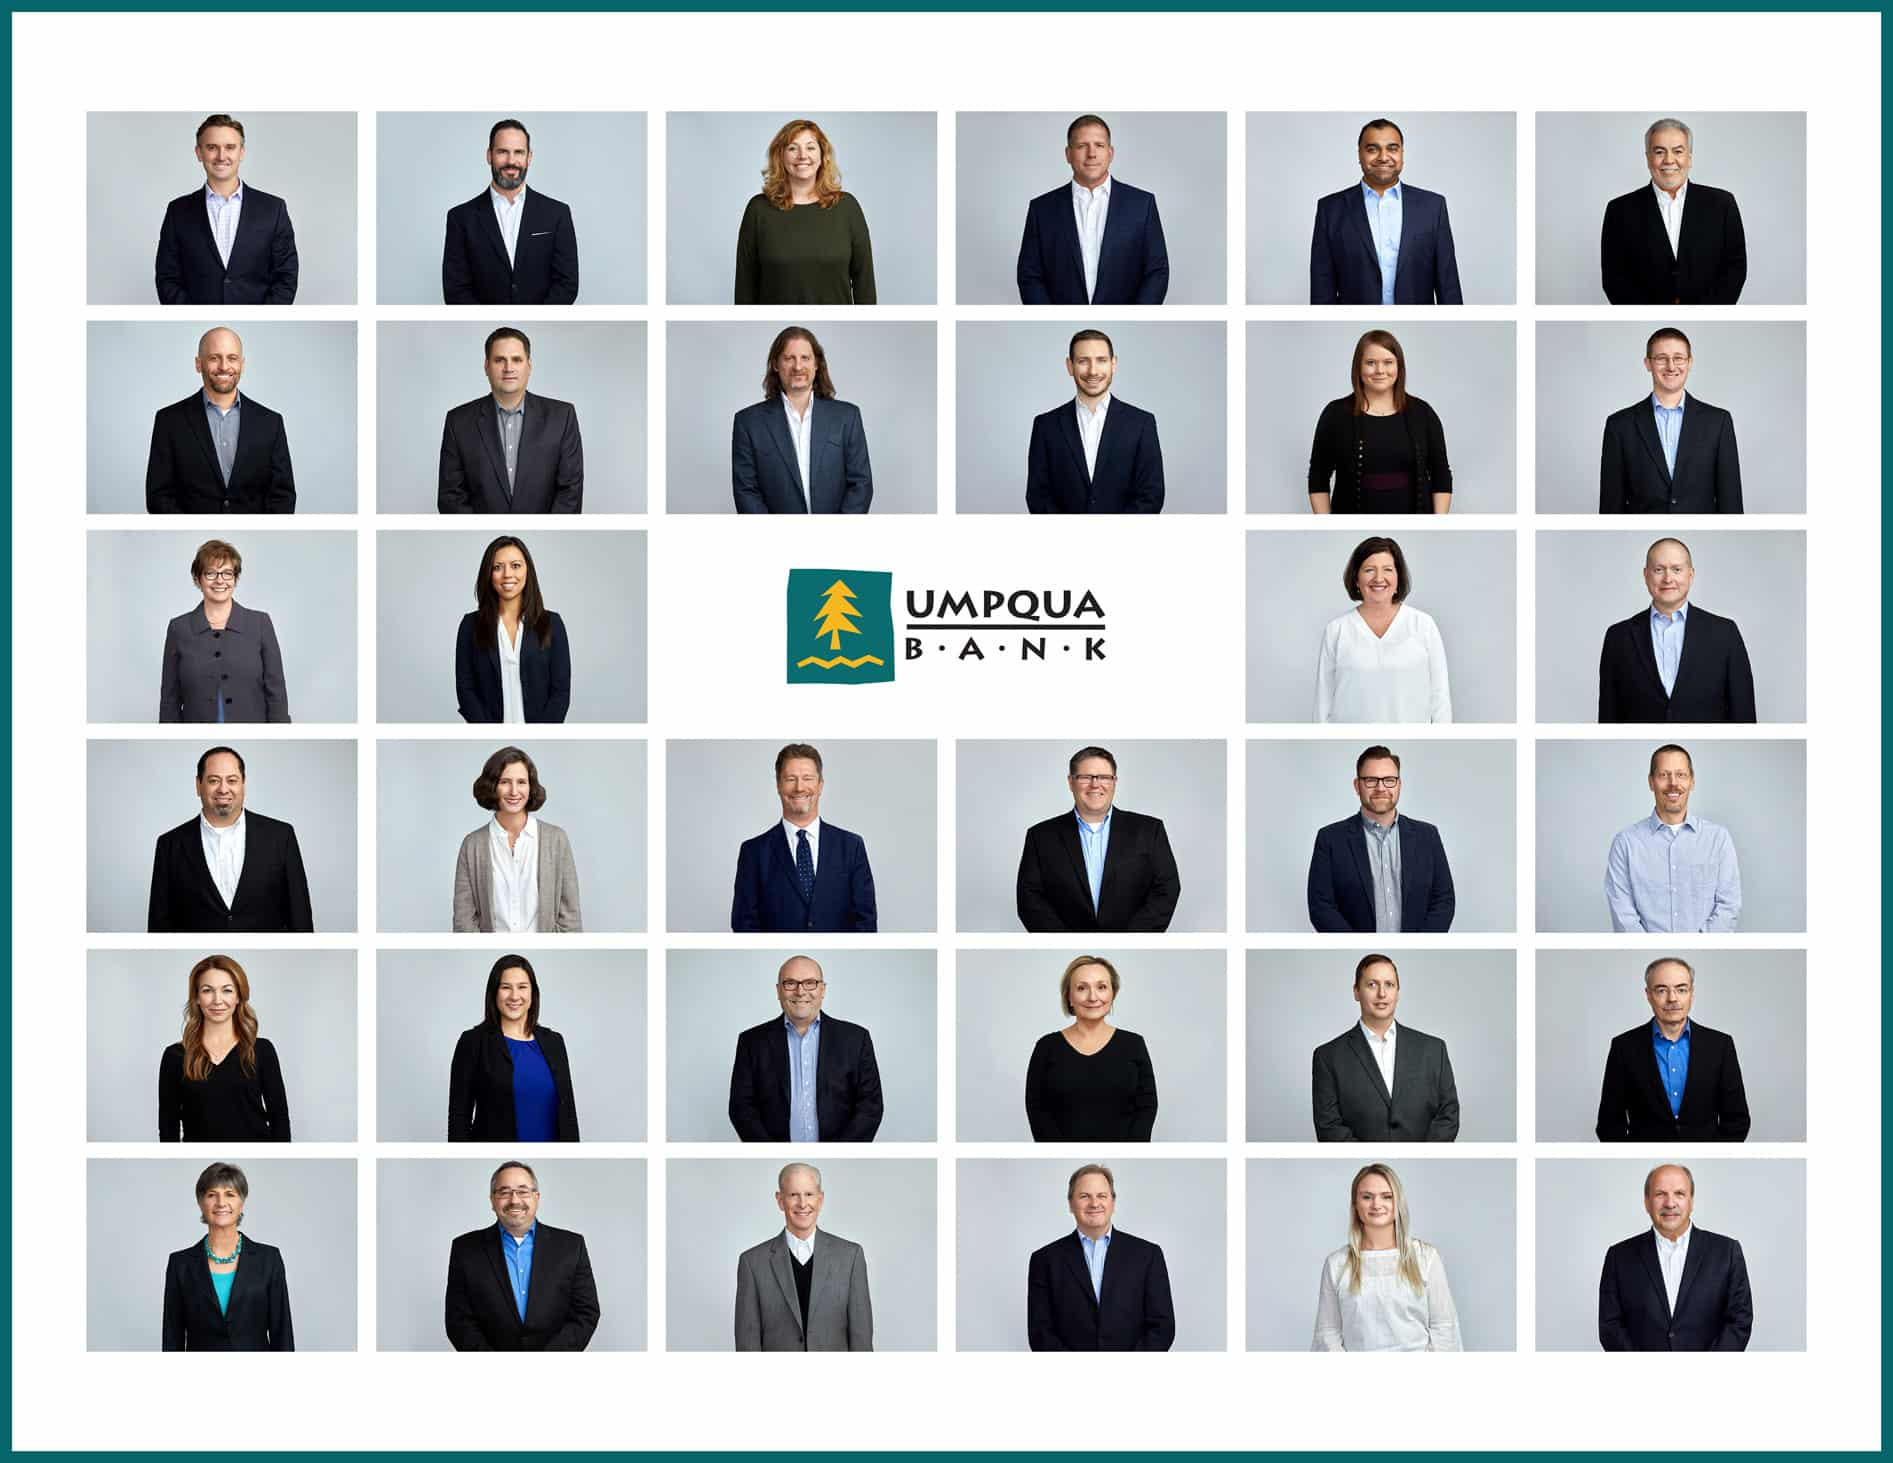 Umpqua Bank Headshot Grid